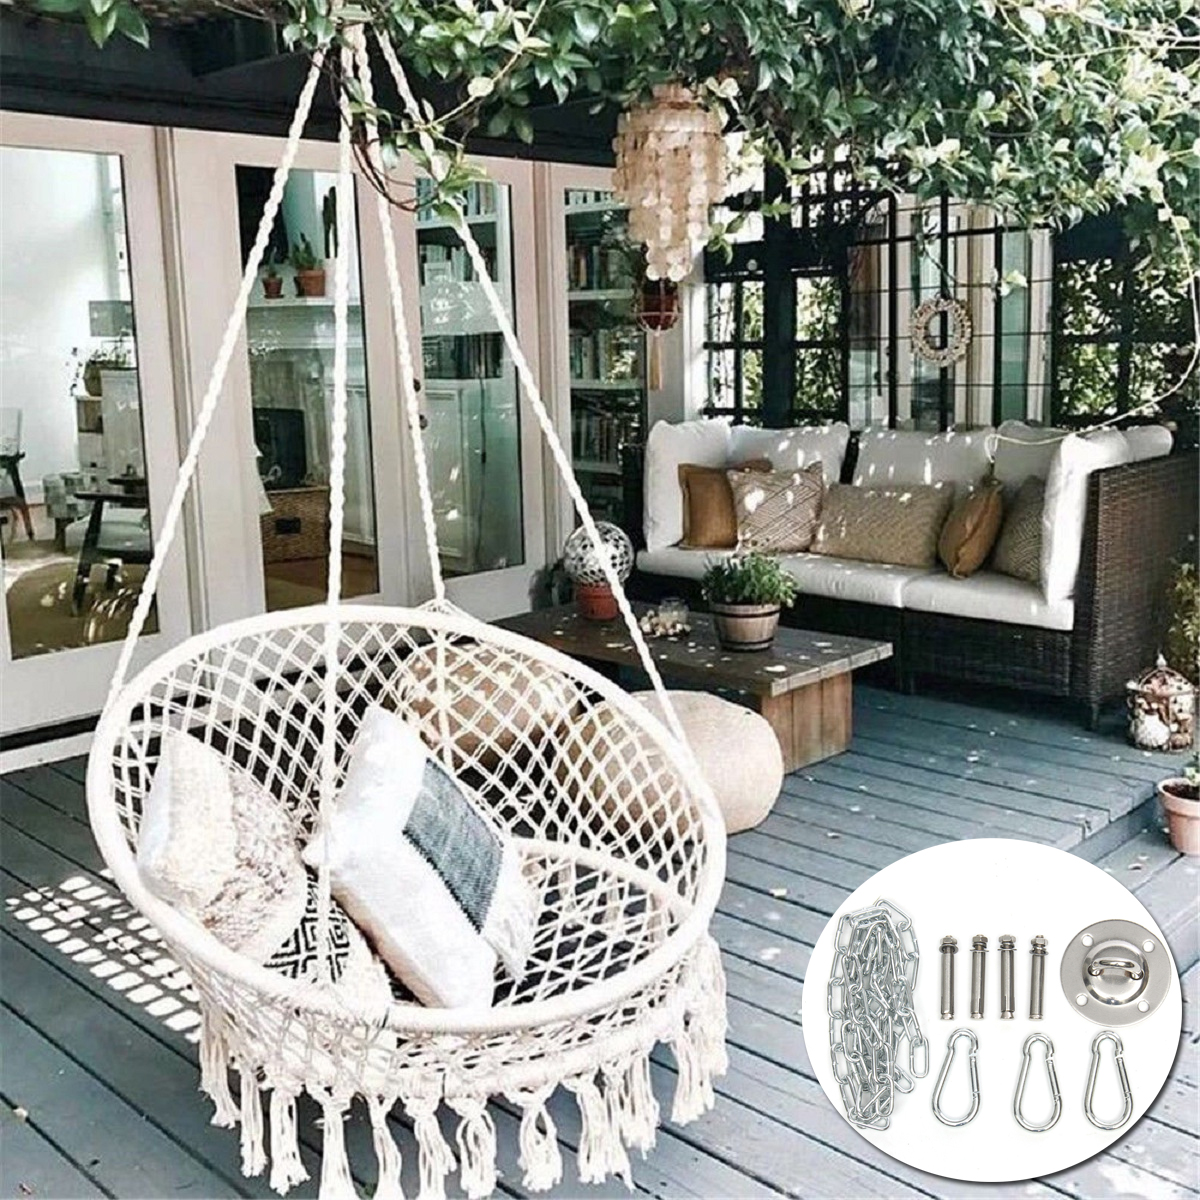 Hanging Hammock Chair Seat Mesh Woven Rope Macrame Wooden Bar Chair Swing Outdoor Home Garden Patio + Install Tool Home Decor Christmas Gift